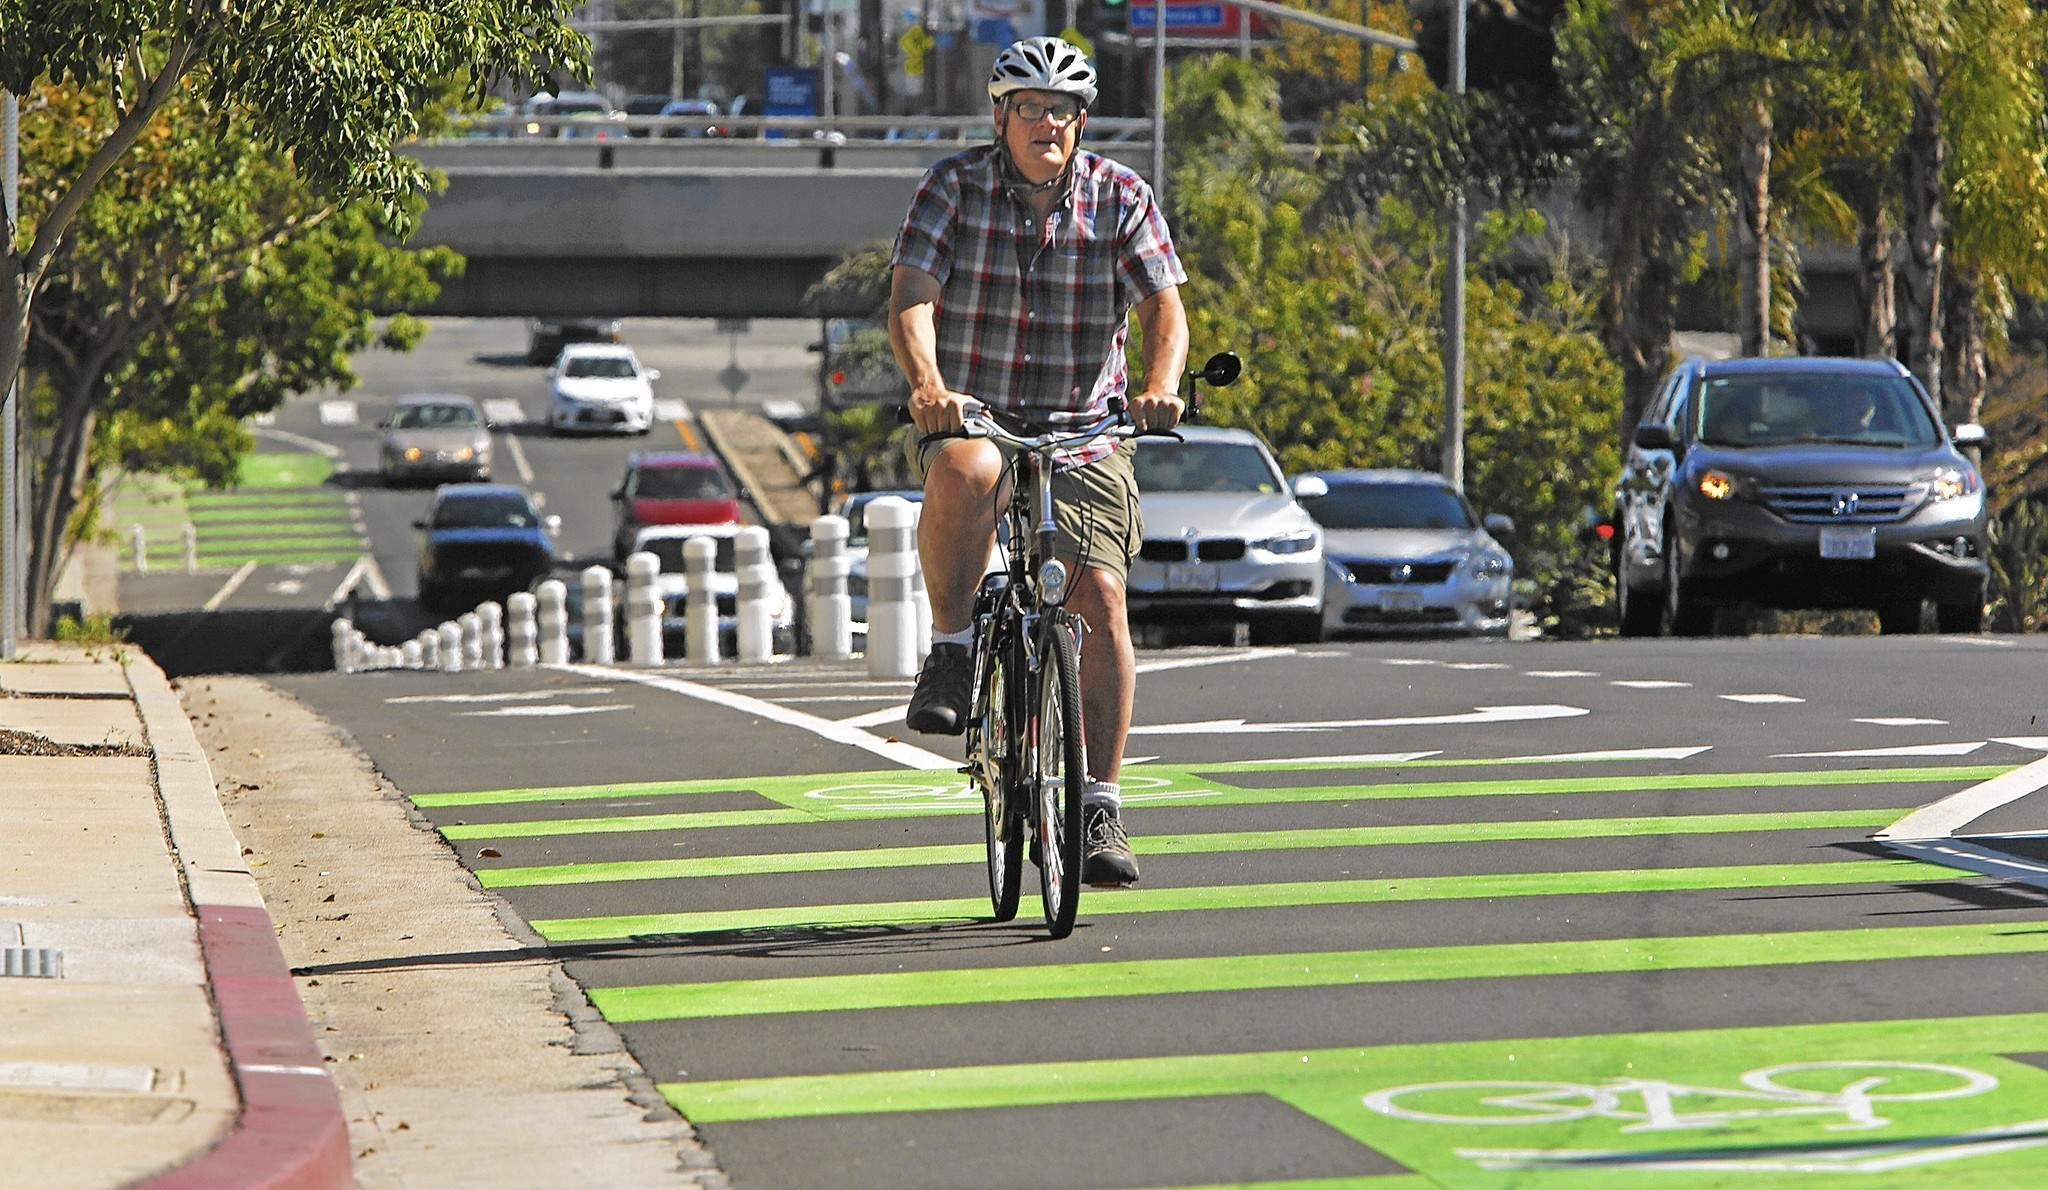 A protected bike lane on Reseda Boulevard in Northridge. (Anne Cusack / Los Angeles Times)